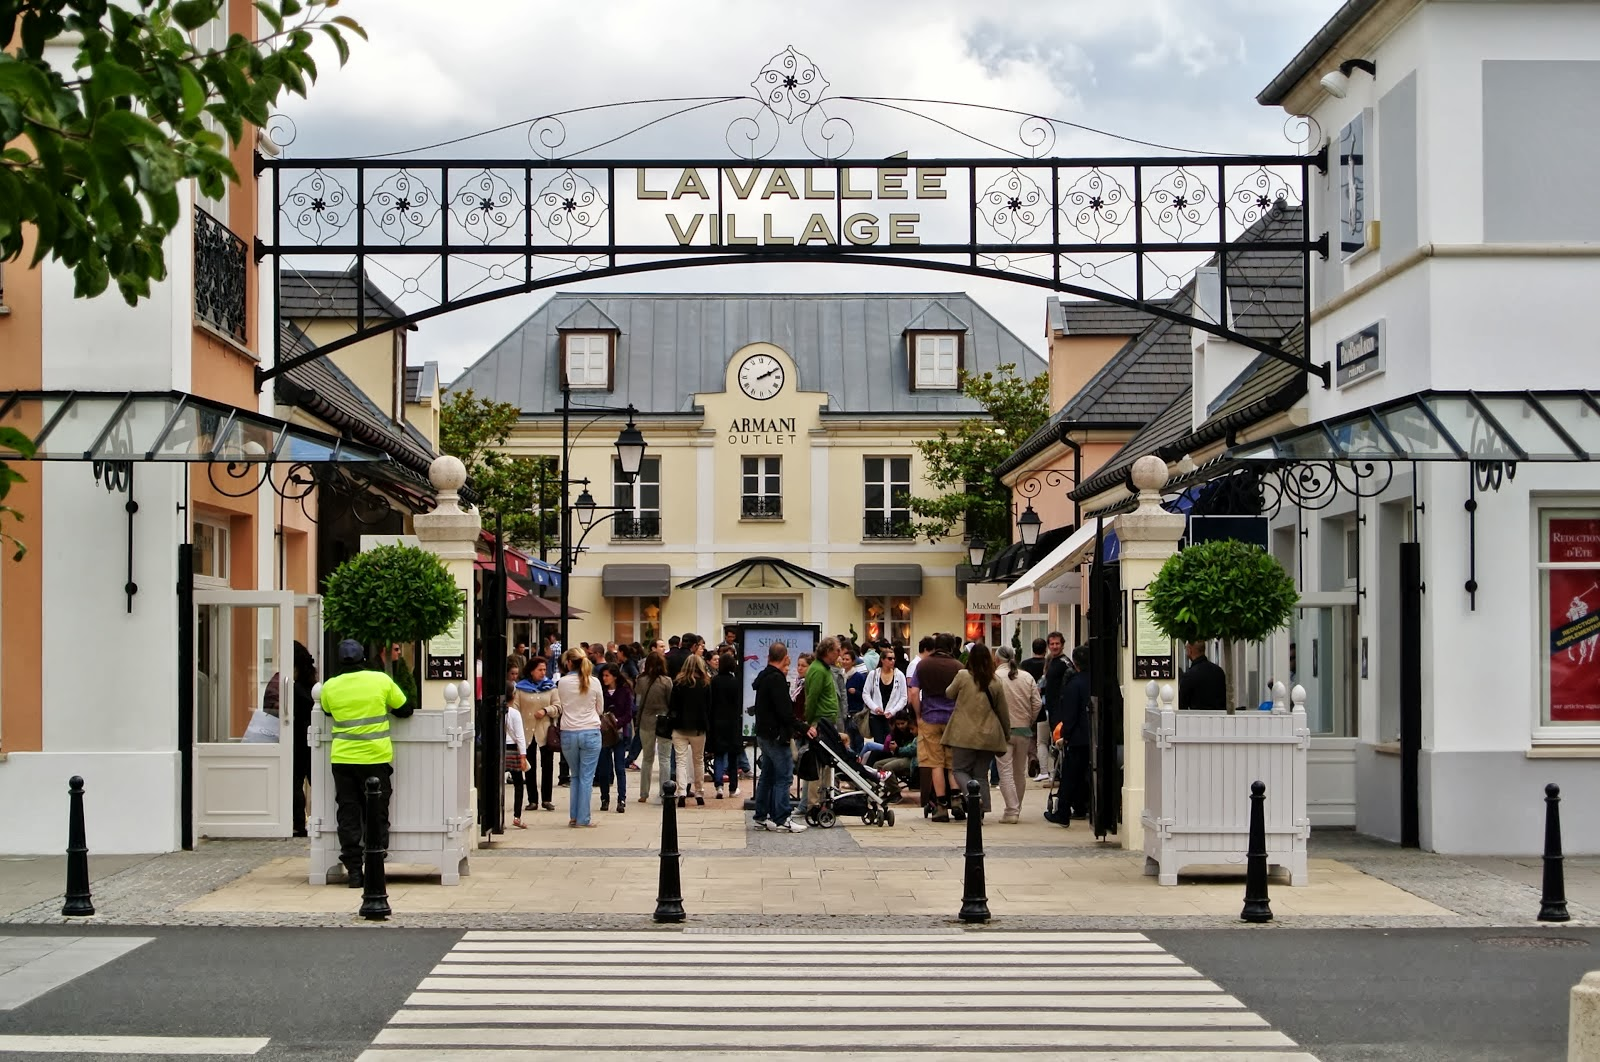 La Vallee Village Outlet psaris